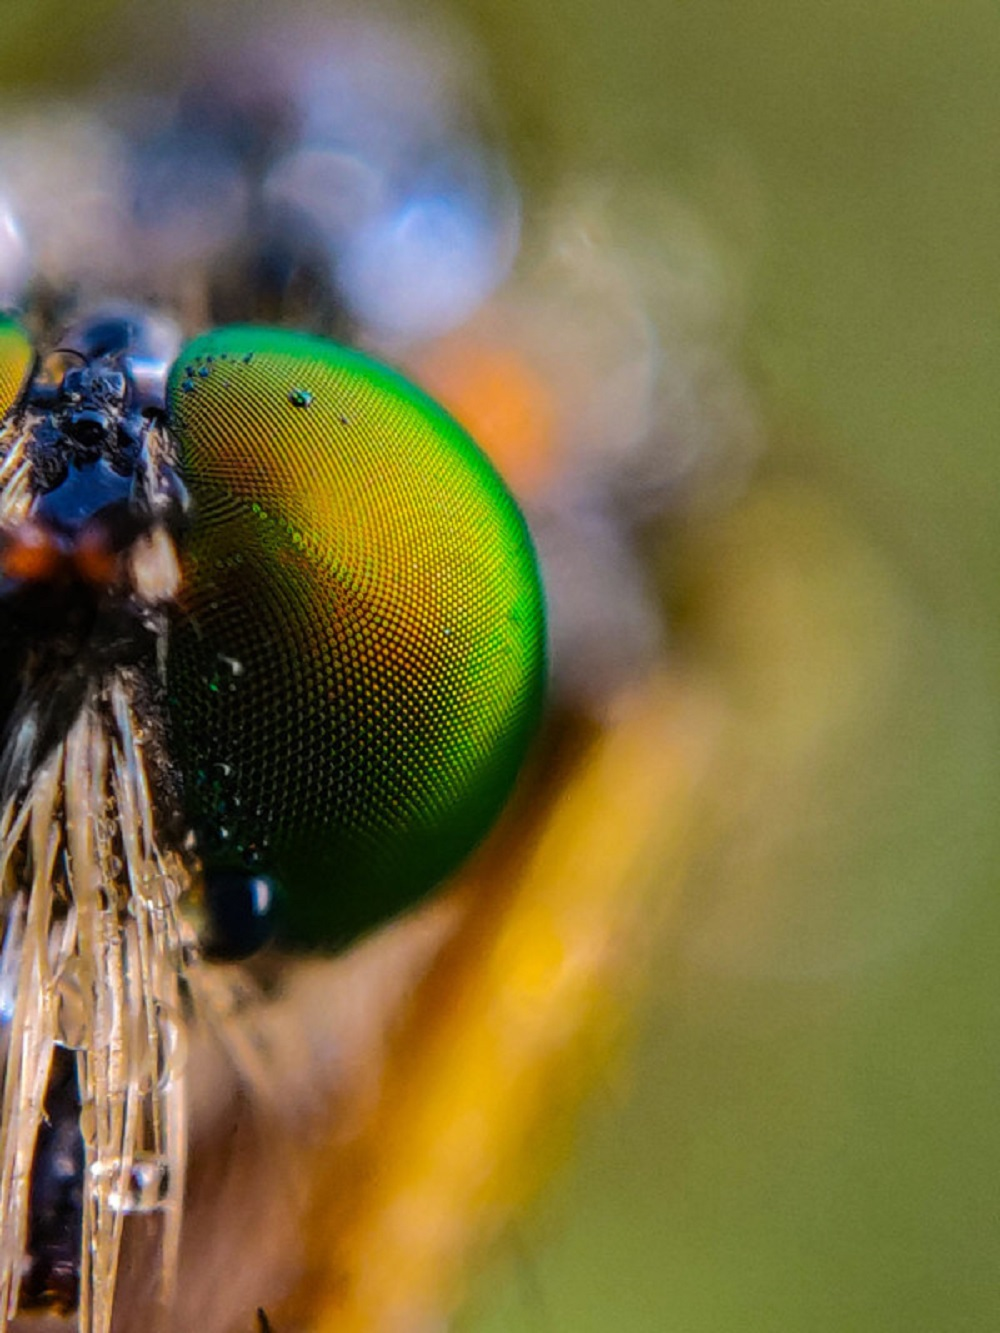 An up close snapshot of a robber fly